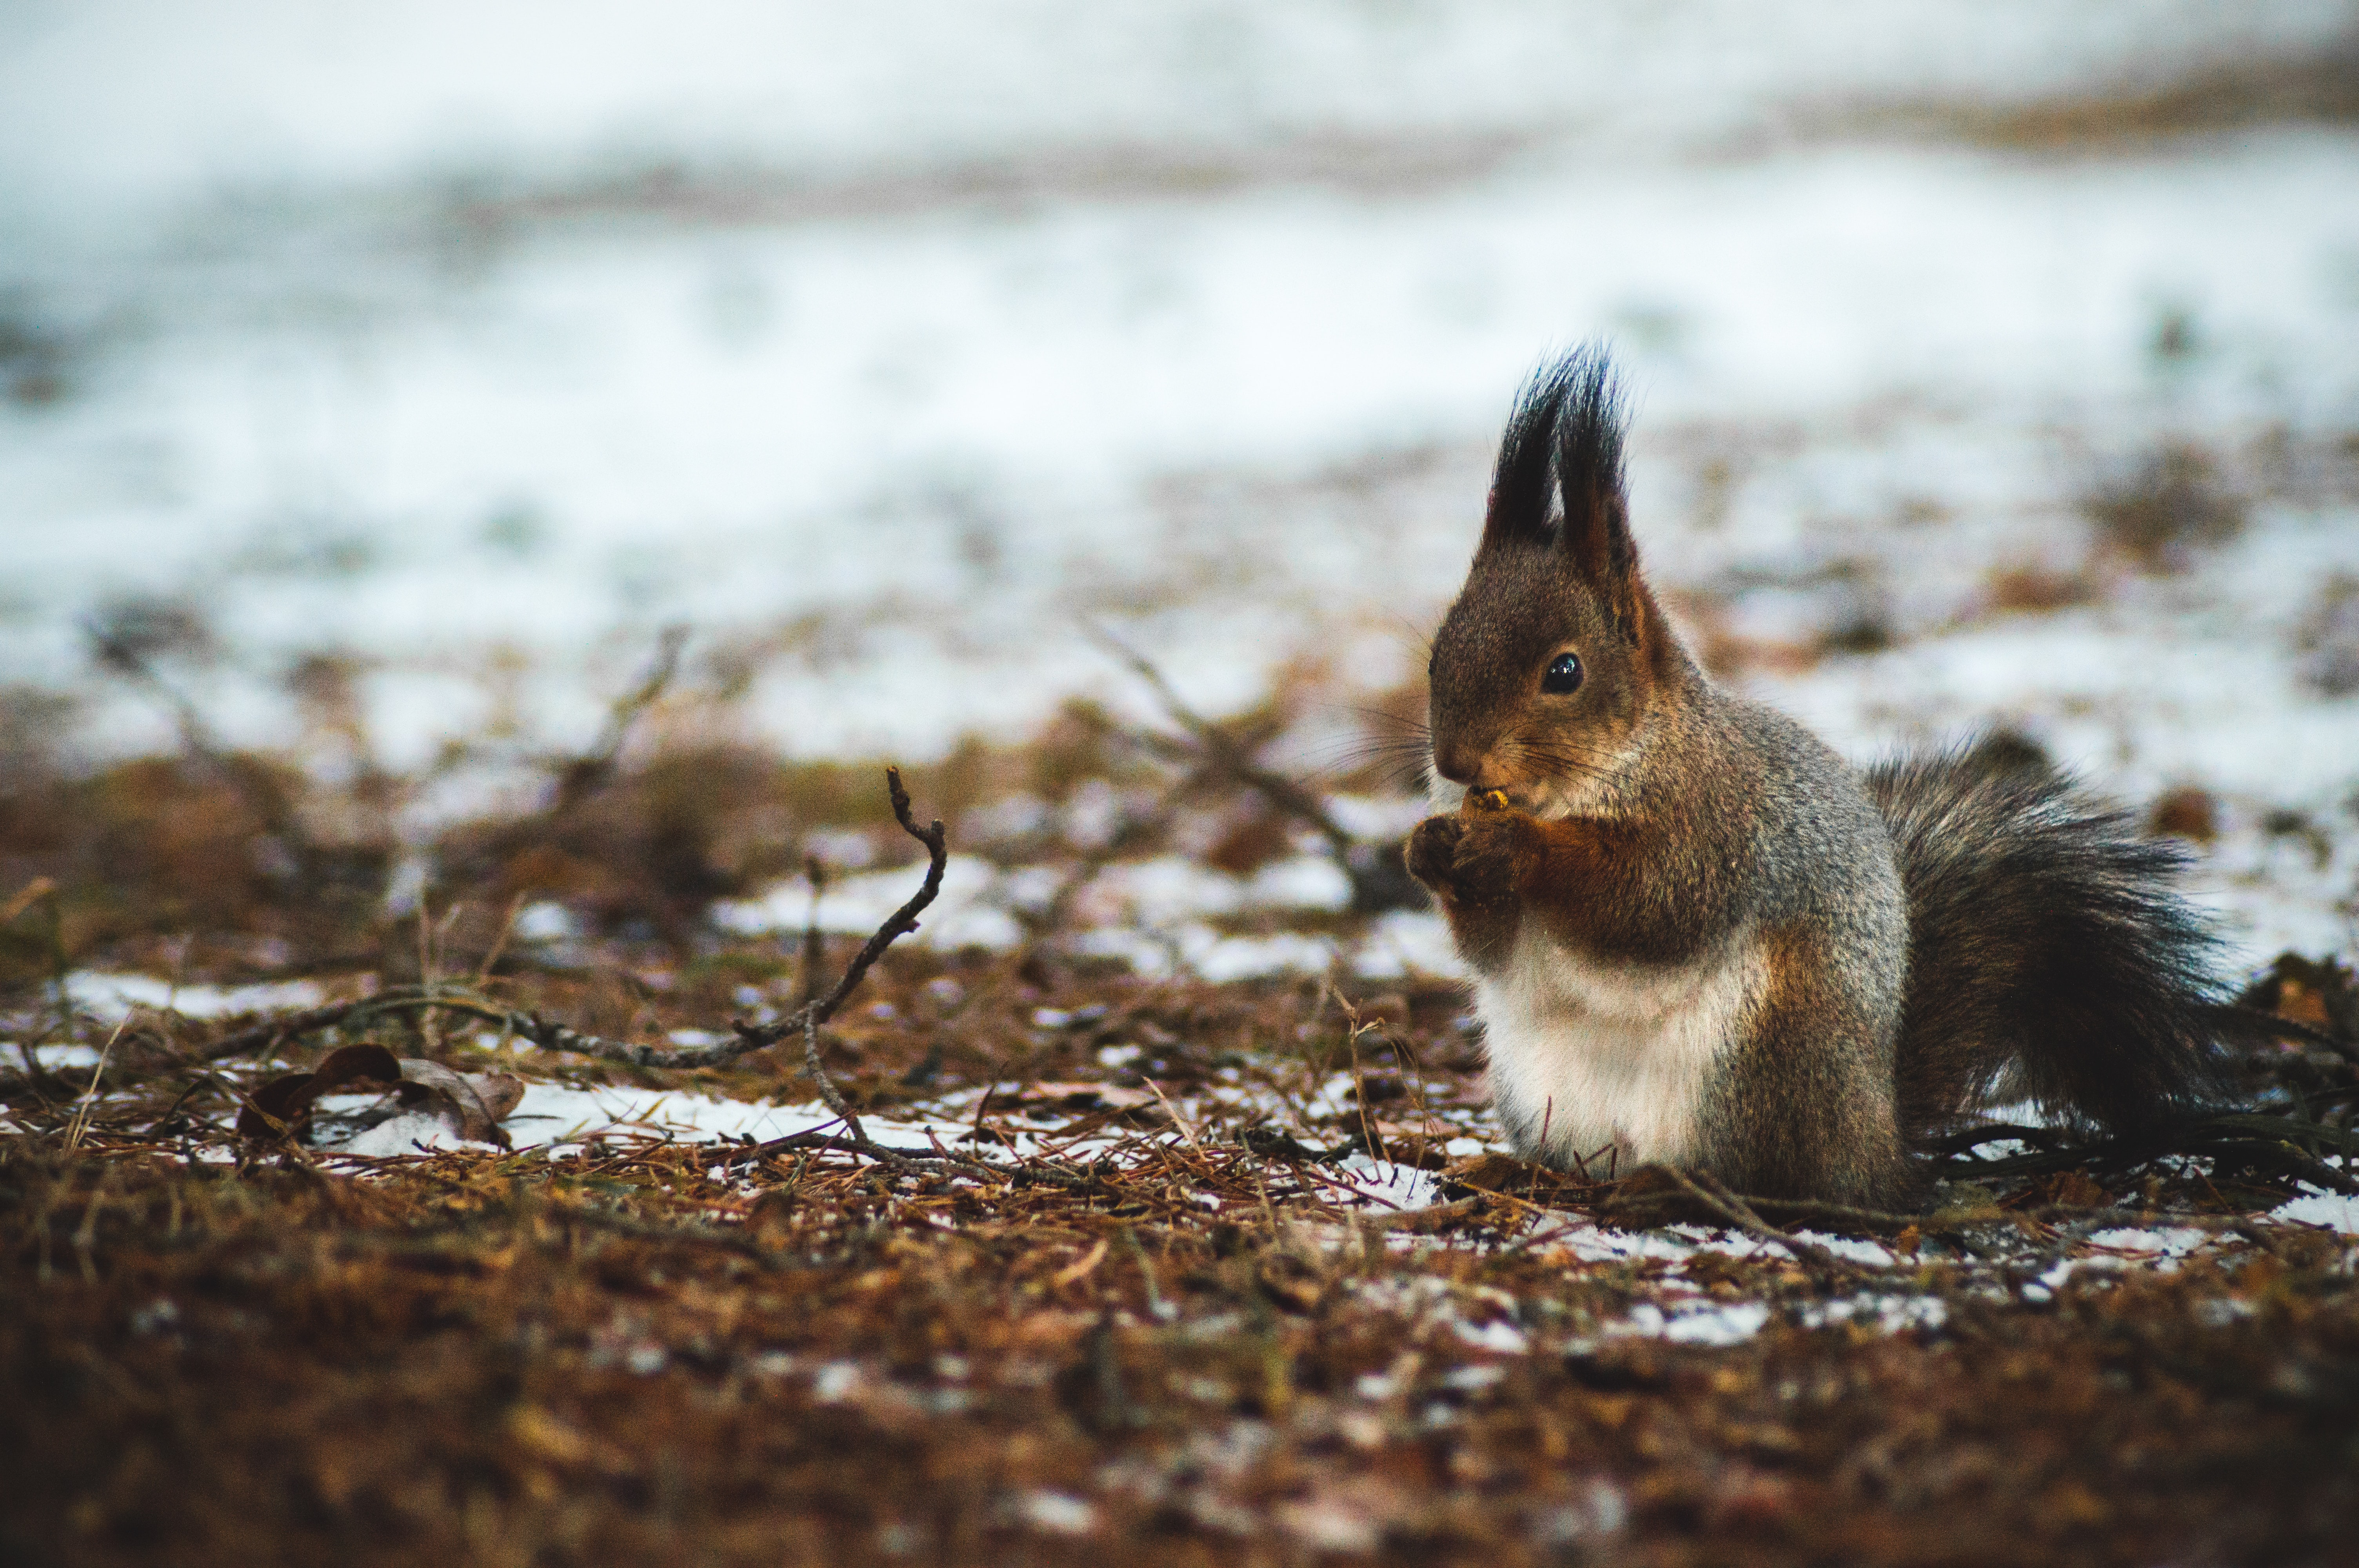 Cute long haired squirrel on a snowy forest floor